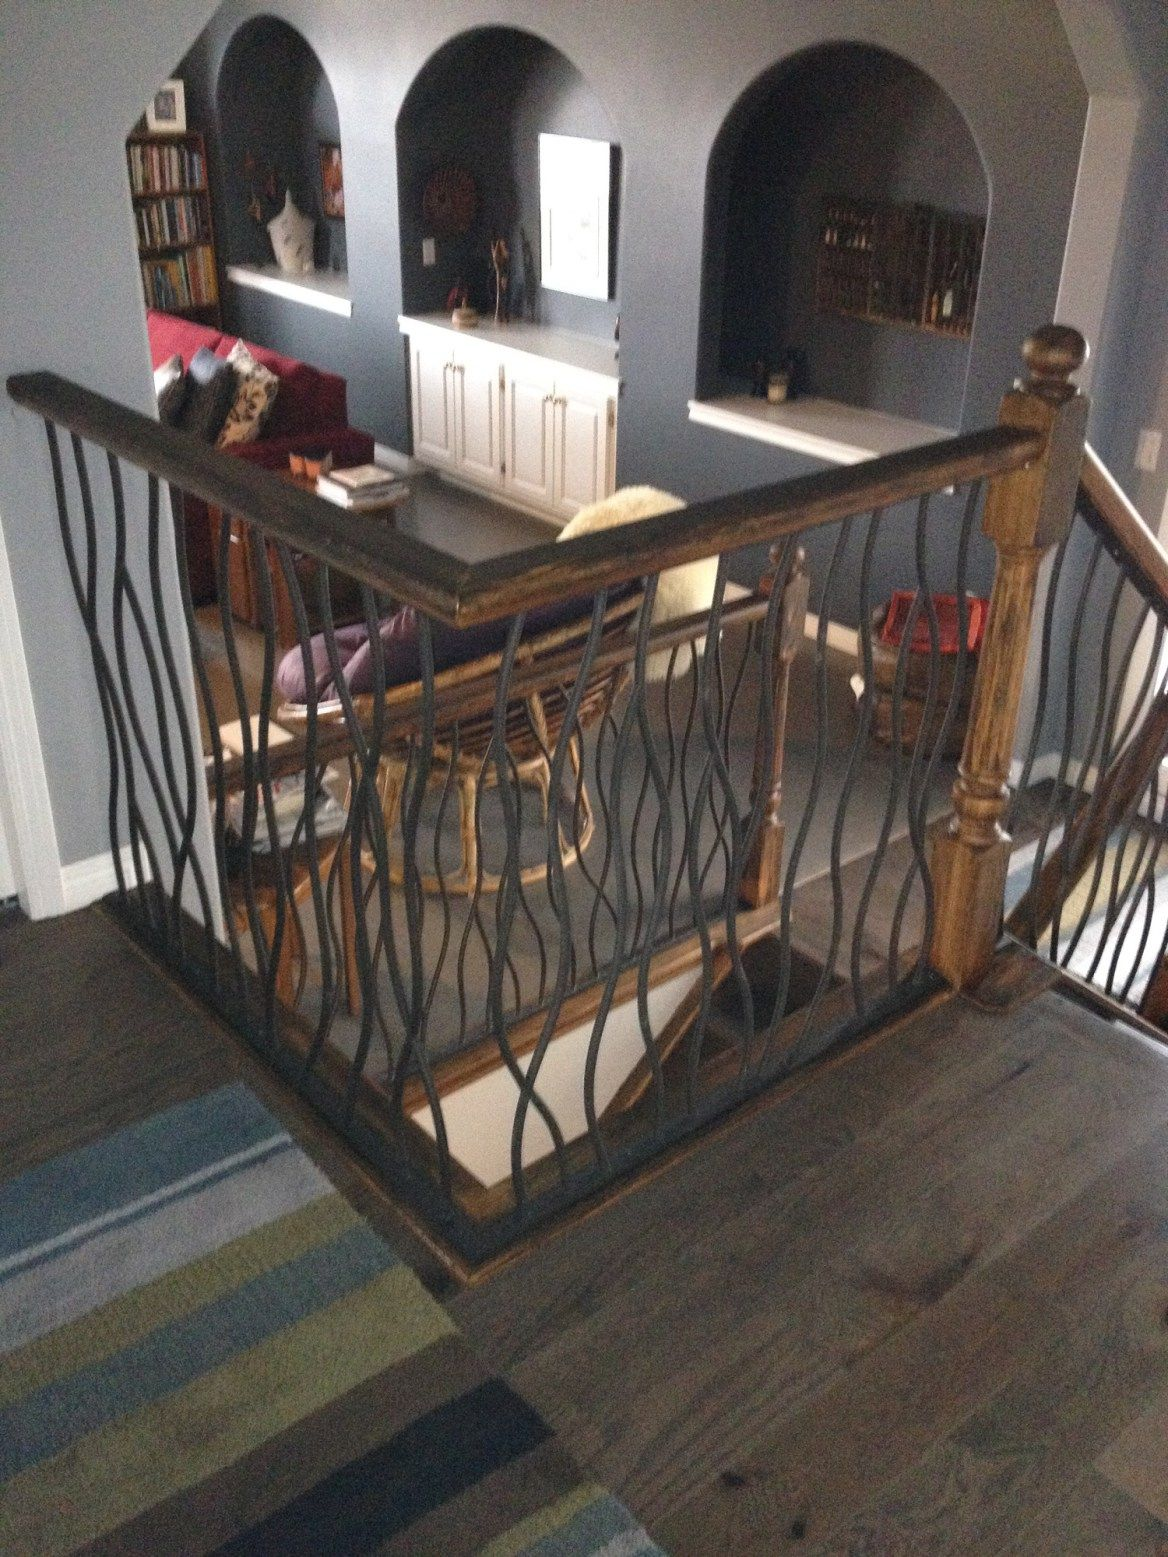 Best Bent Railing With Distressed Wood Finished 16 Indoor 400 x 300